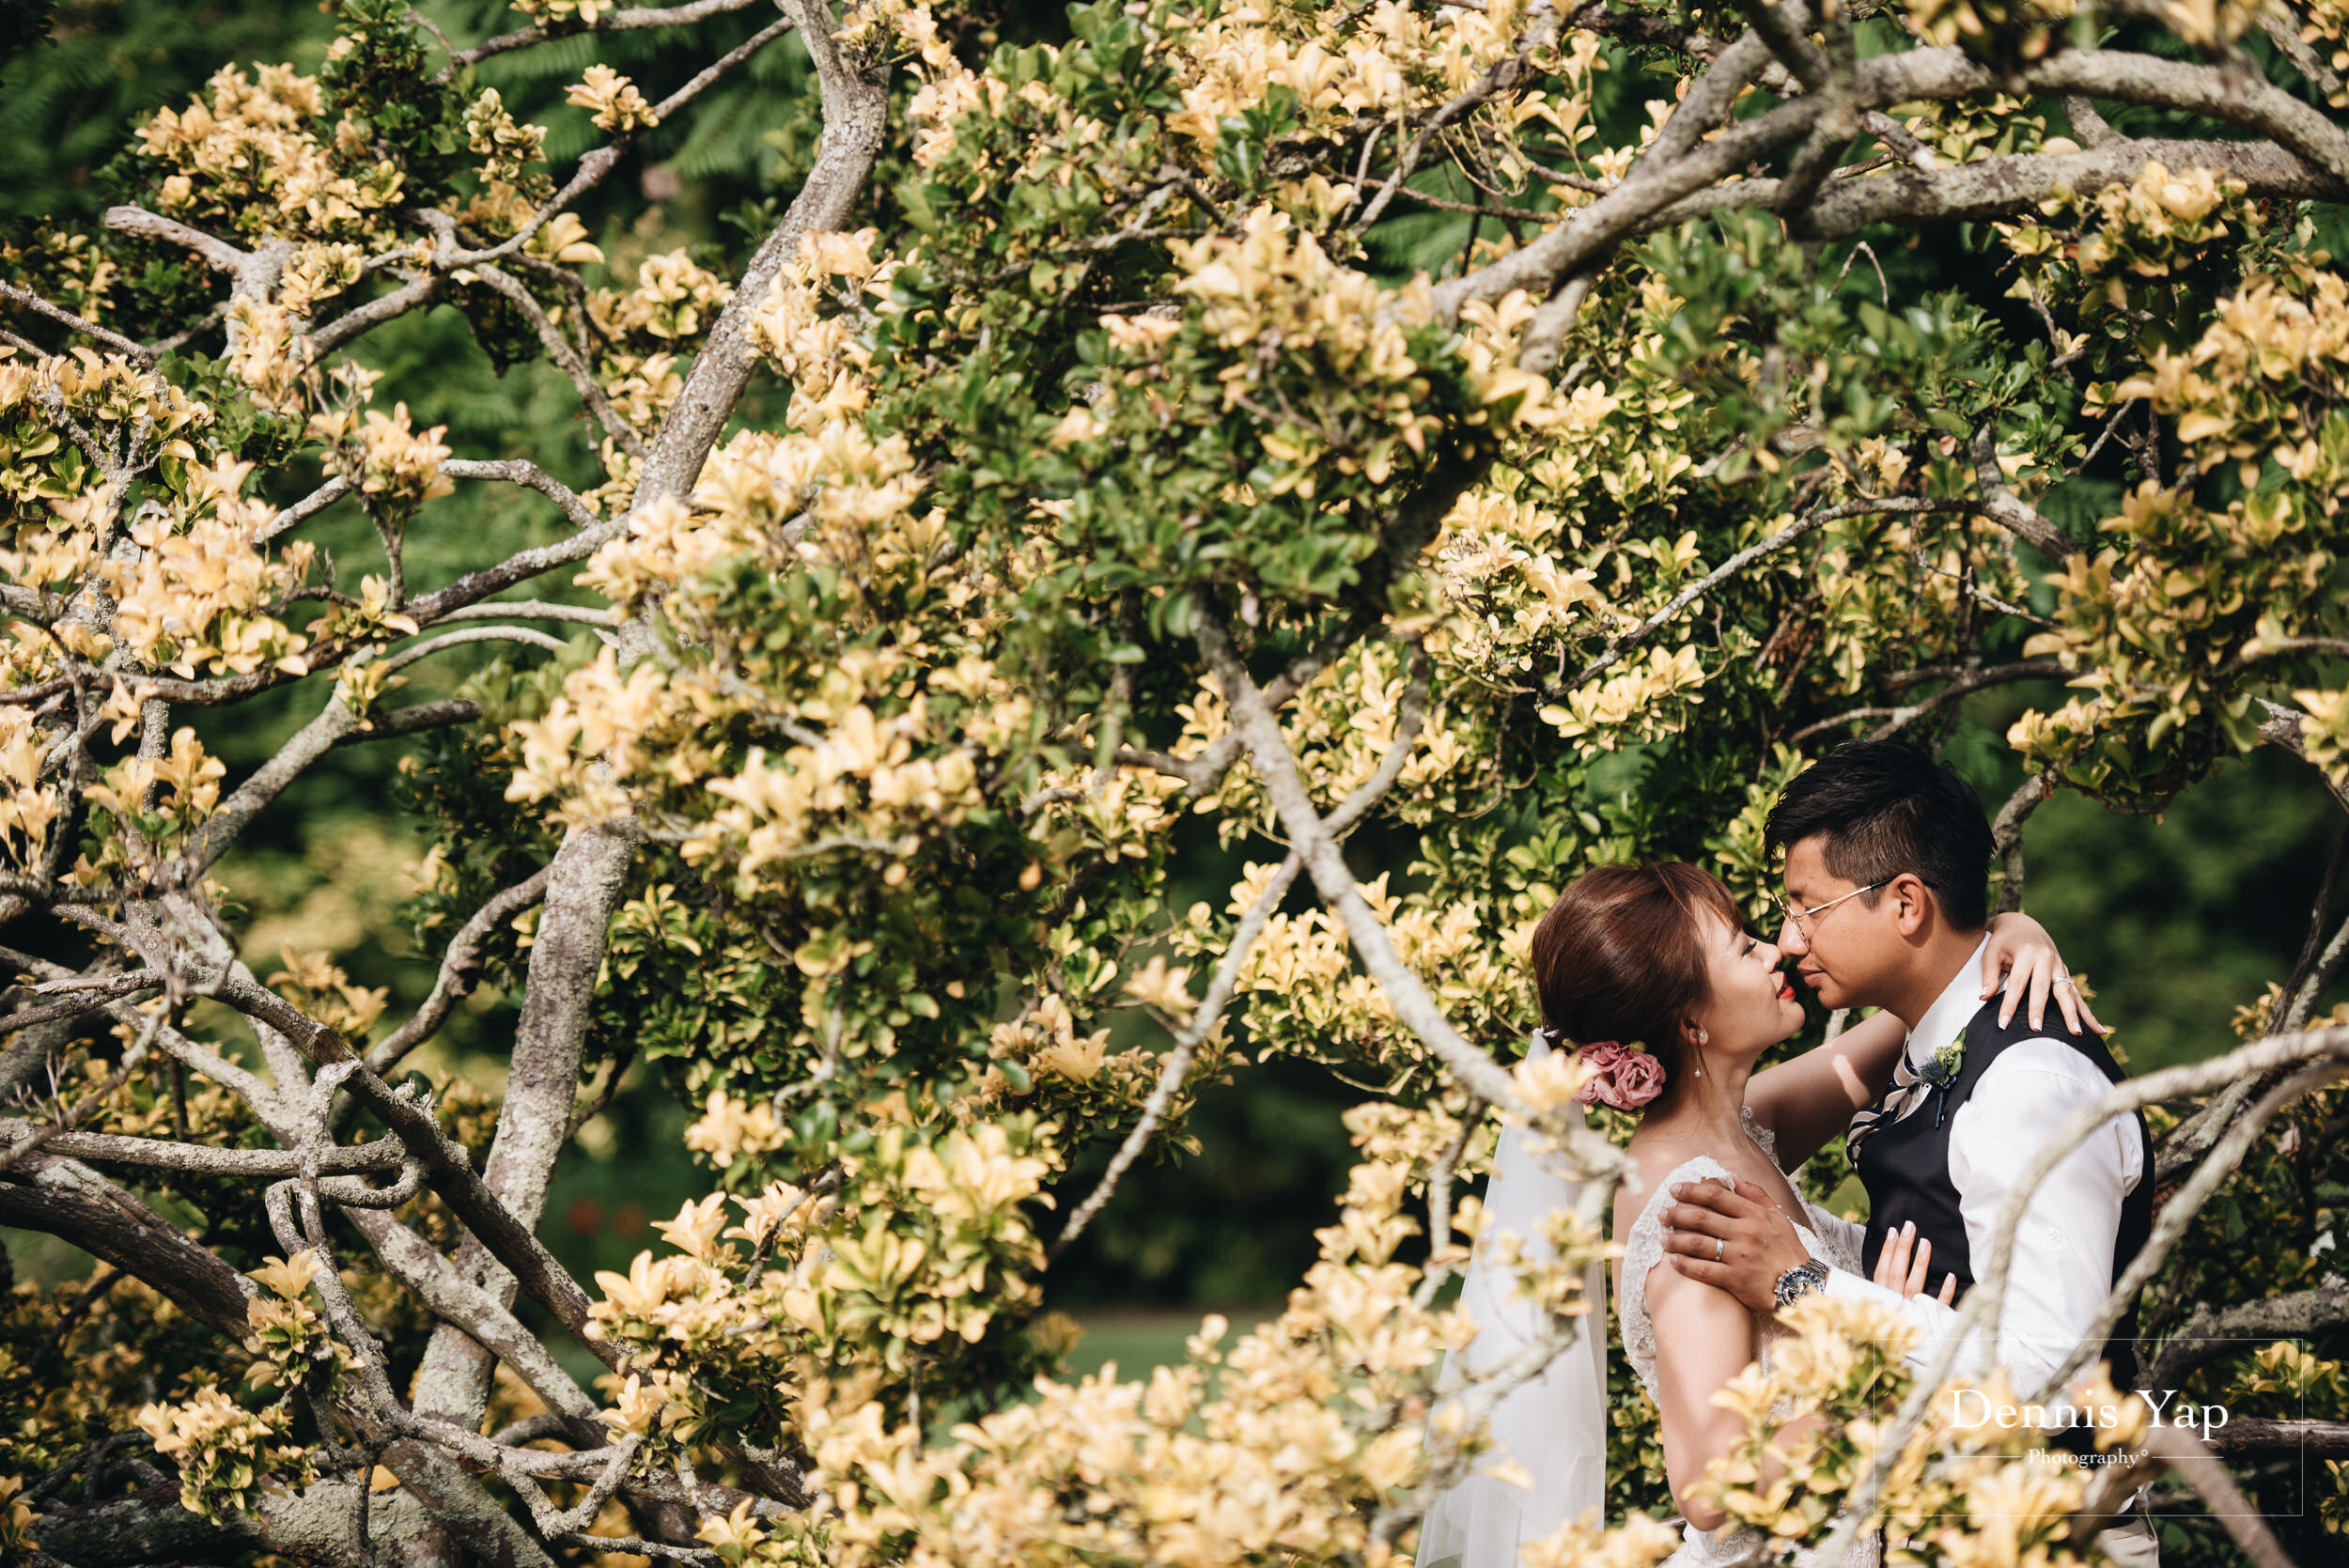 king bella pre wedding melbourne dennis yap photography malaysia top international photographer-14.jpg